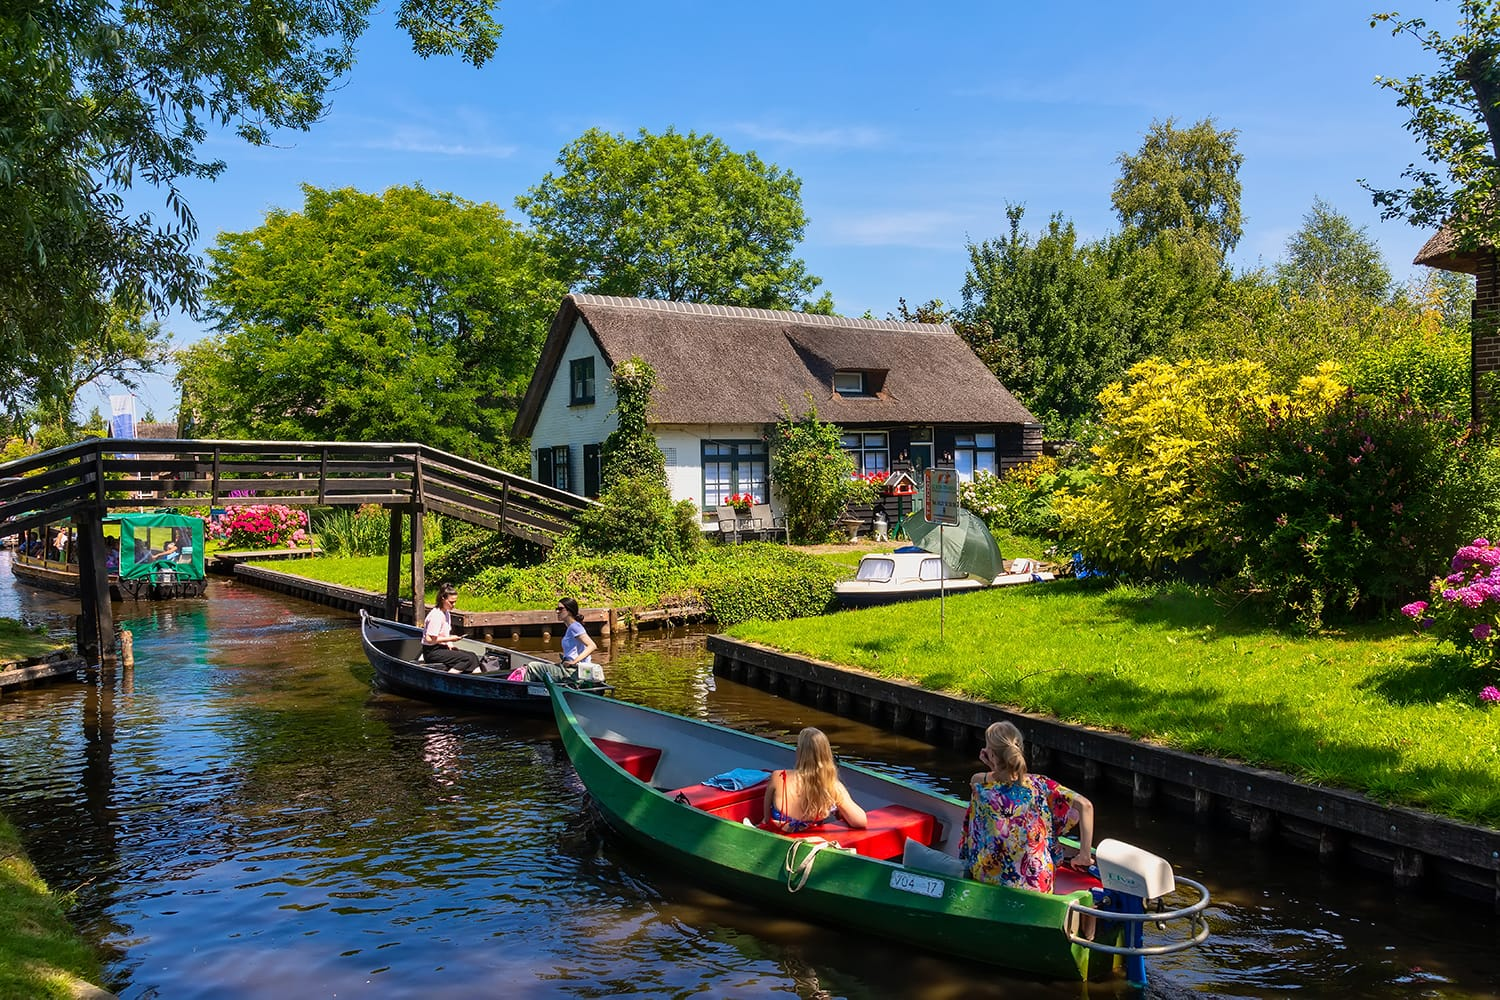 view of famous village Giethoorn with canals in the Netherlands. Giethoorn is also called 'Venice of The Netherlands'